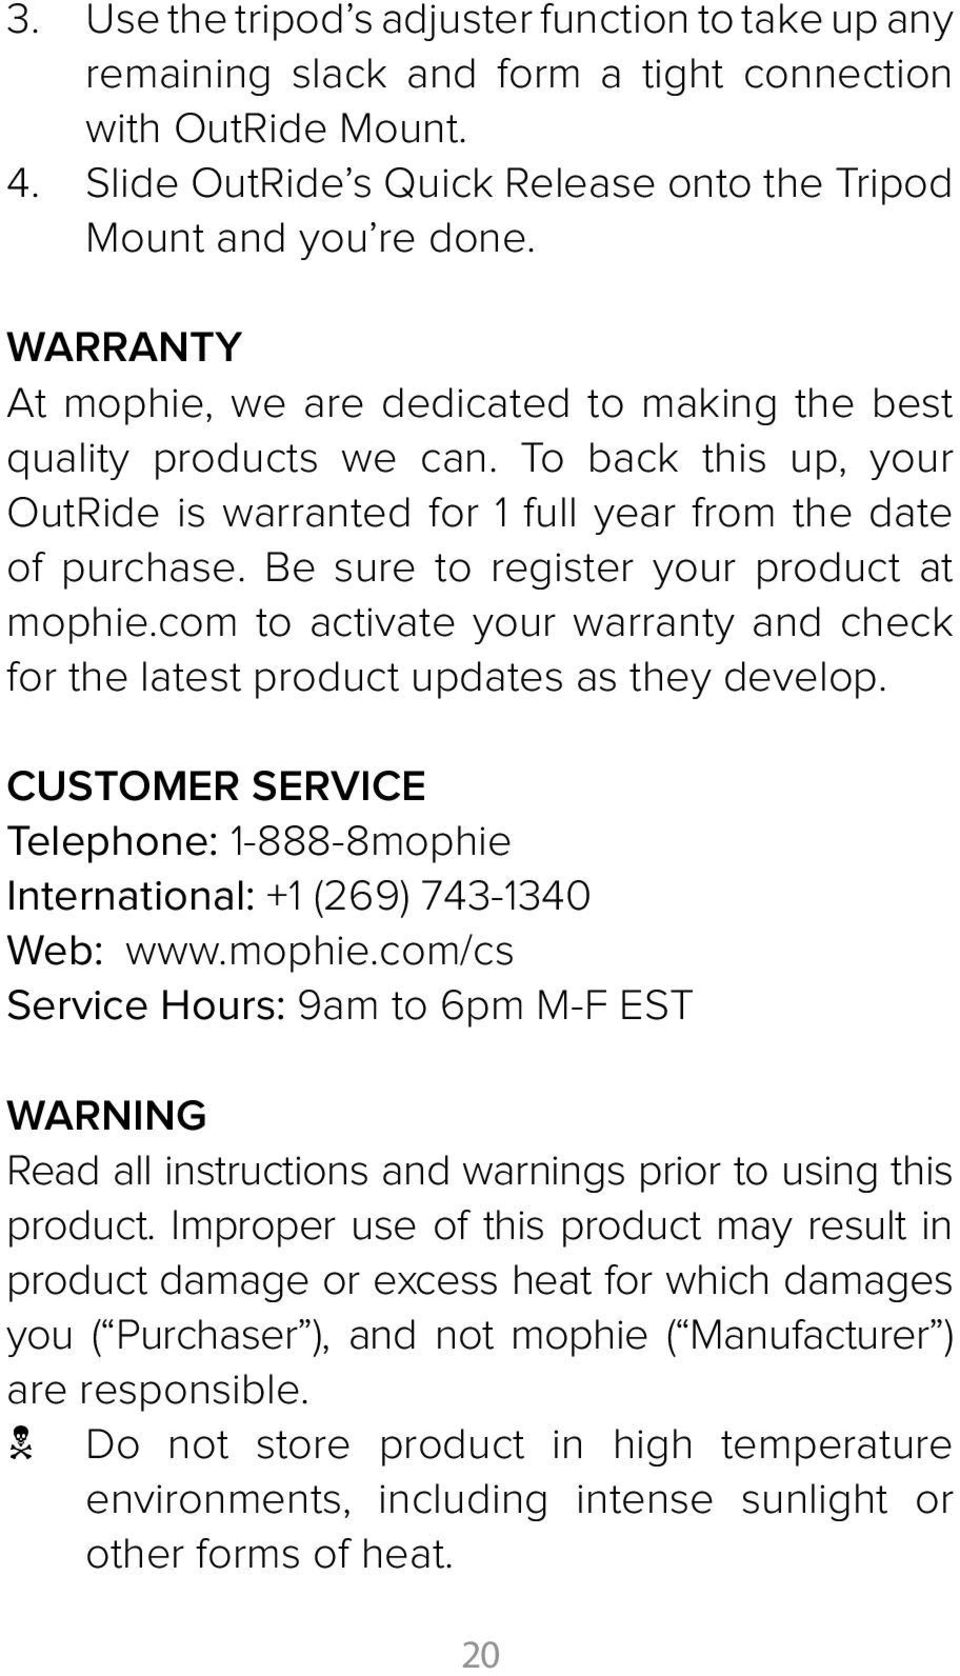 Be sure to register your product at mophie.com to activate your warranty and check for the latest product updates as they develop.